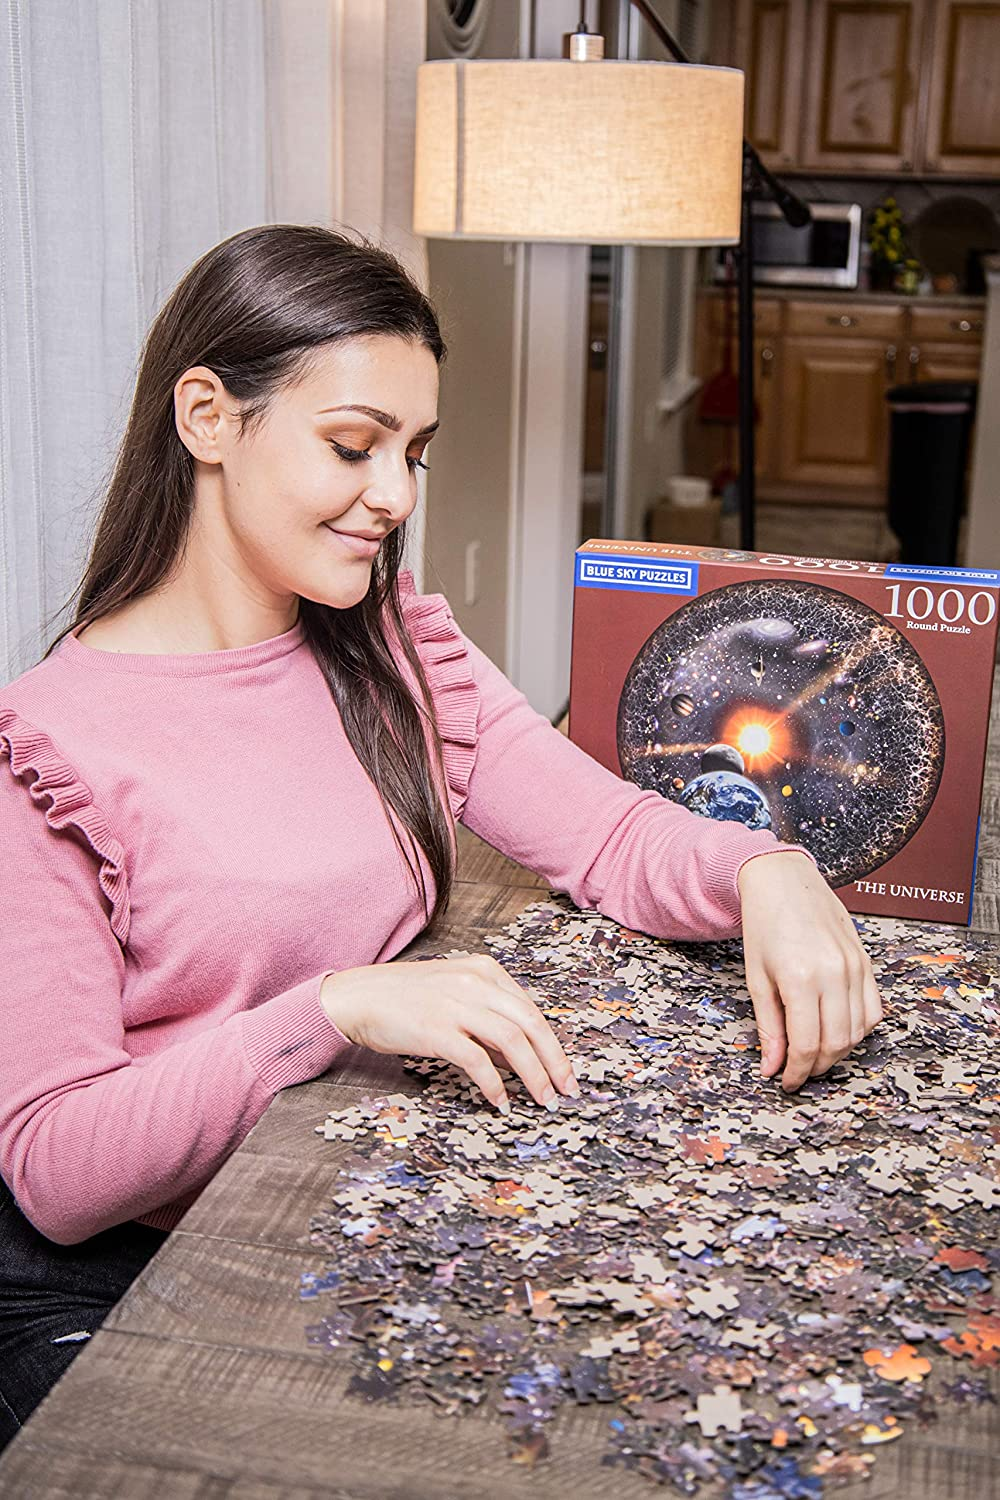 Celestial View of The Earth The Universe Blue Sky Puzzles 1000 Piece Round Space Jigsaw Puzzle for Adults Stars and Galaxy Moon Solar System Planets Large 26.6 Inch Circular Puzzle